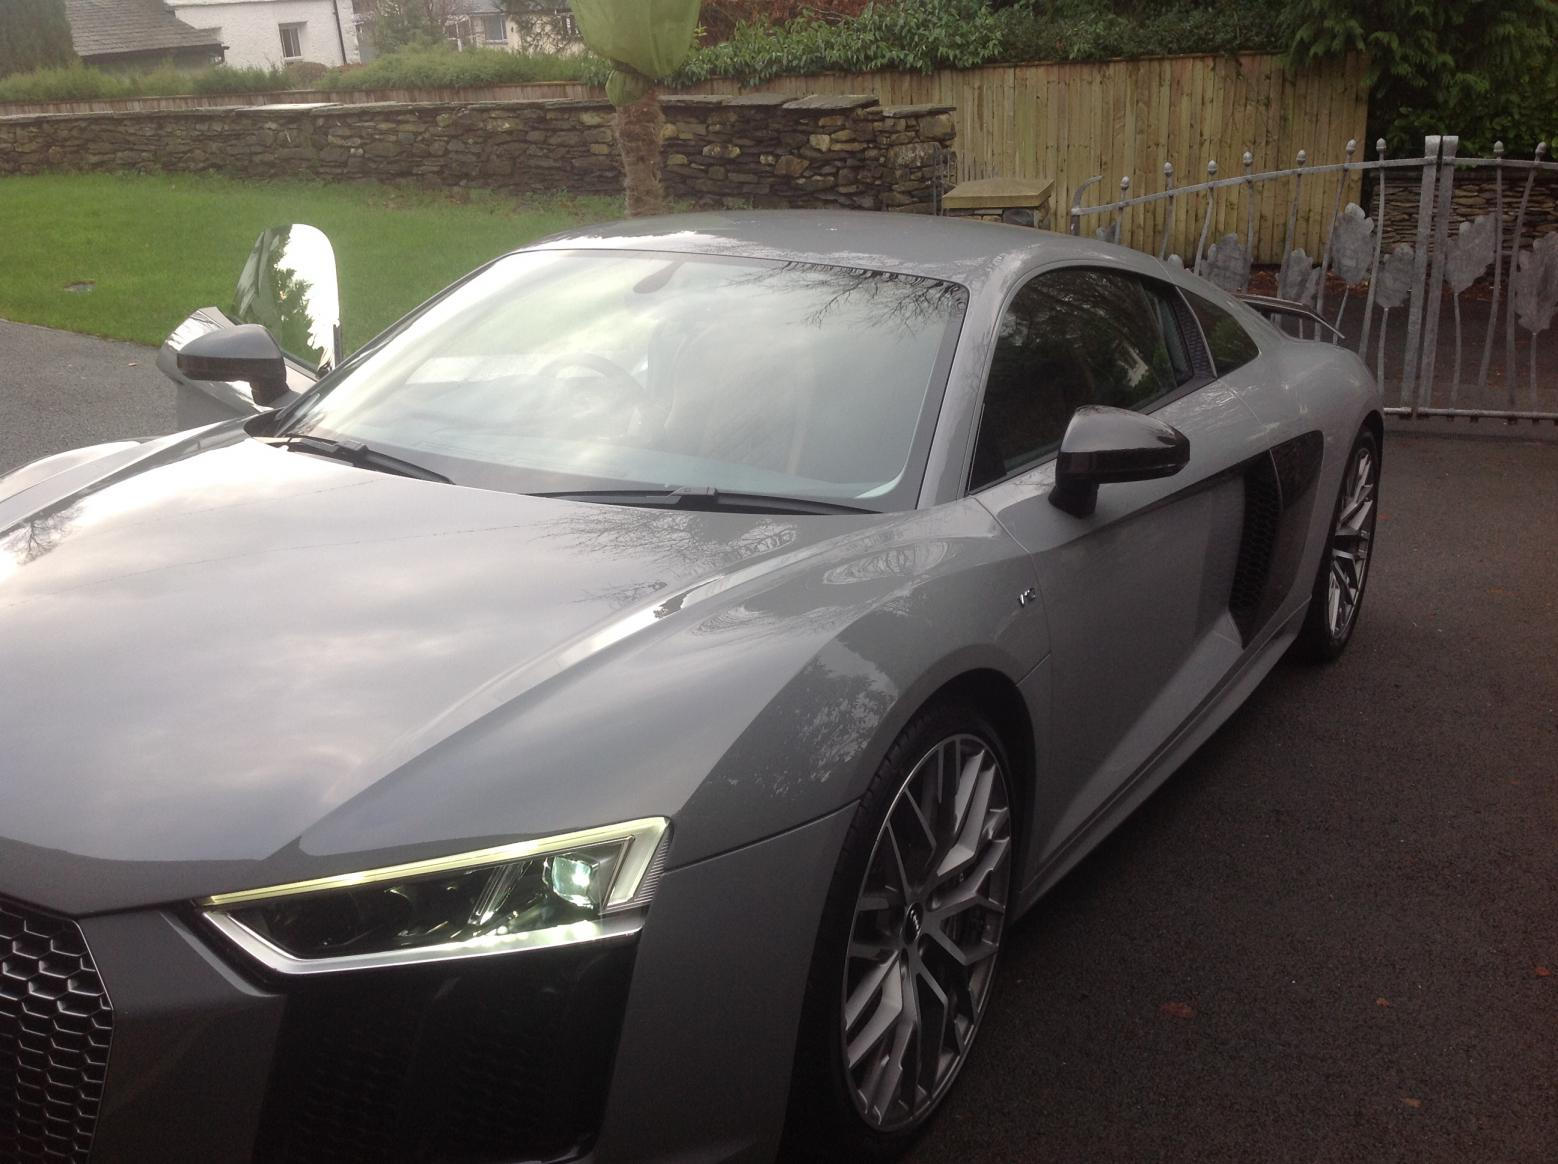 Official Second Gen R8 picture thread - upload yours !!!-image.jpg